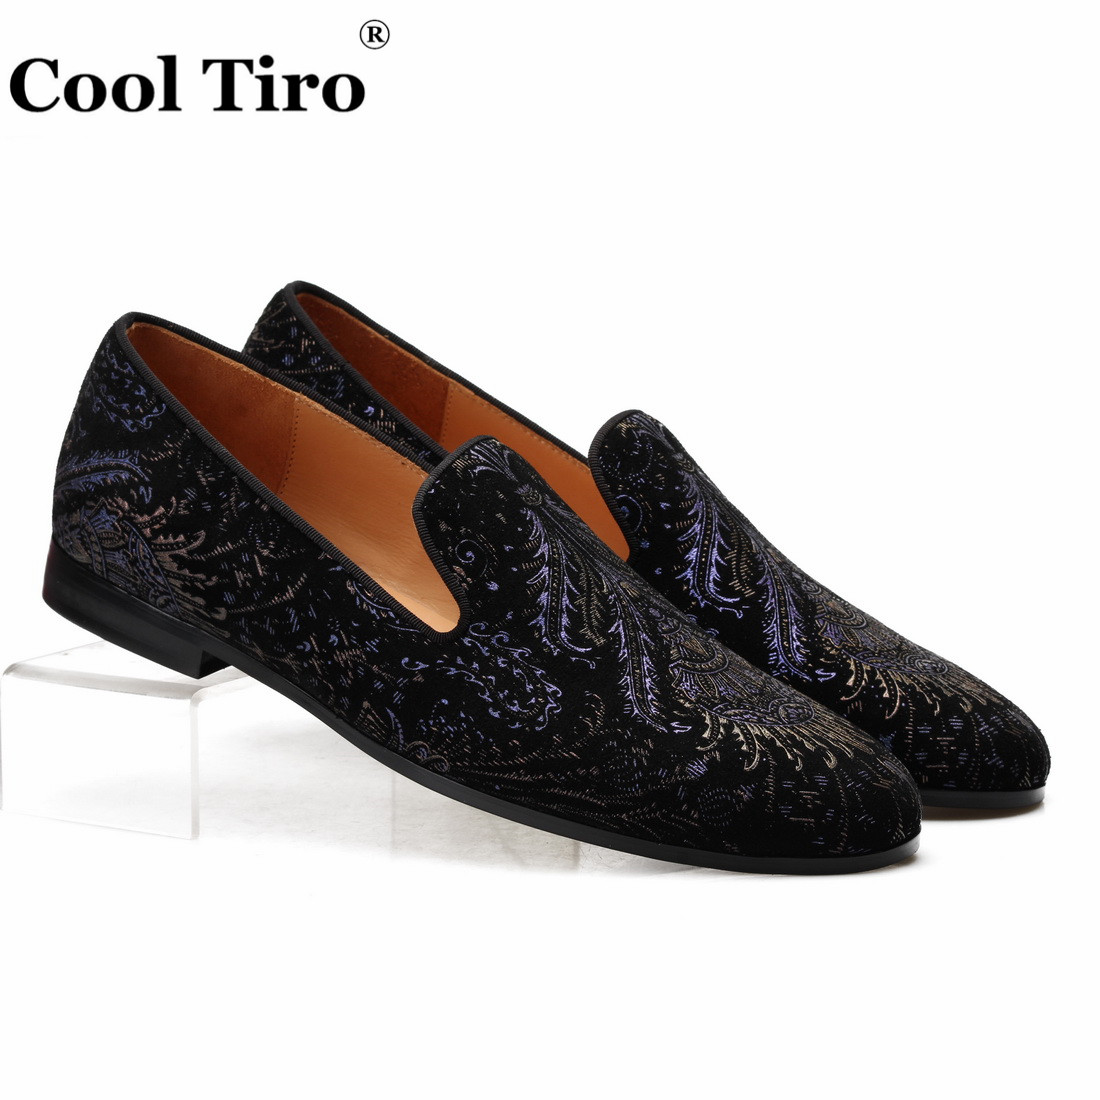 Cool Tiro Black Suede 3D printing Loafers Men's Smoking Slippers Moccasins Wedding Party Dress Shoes Genuine Leather Casual Shoe-in Men's Casual Shoes from Shoes    1